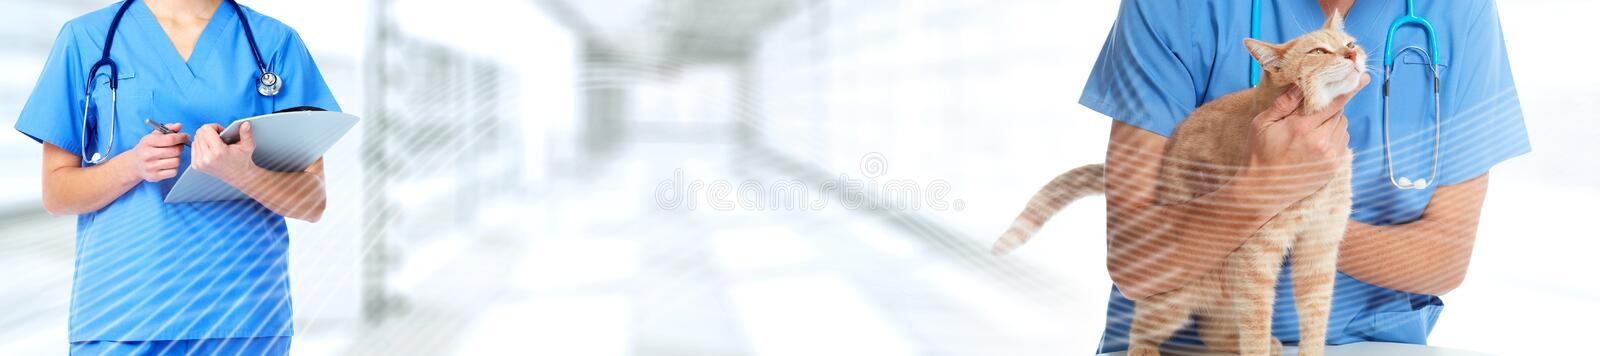 Cat and veterinarian doctor. Veterinary physician doctor with stethoscope checking cat health royalty free stock photo